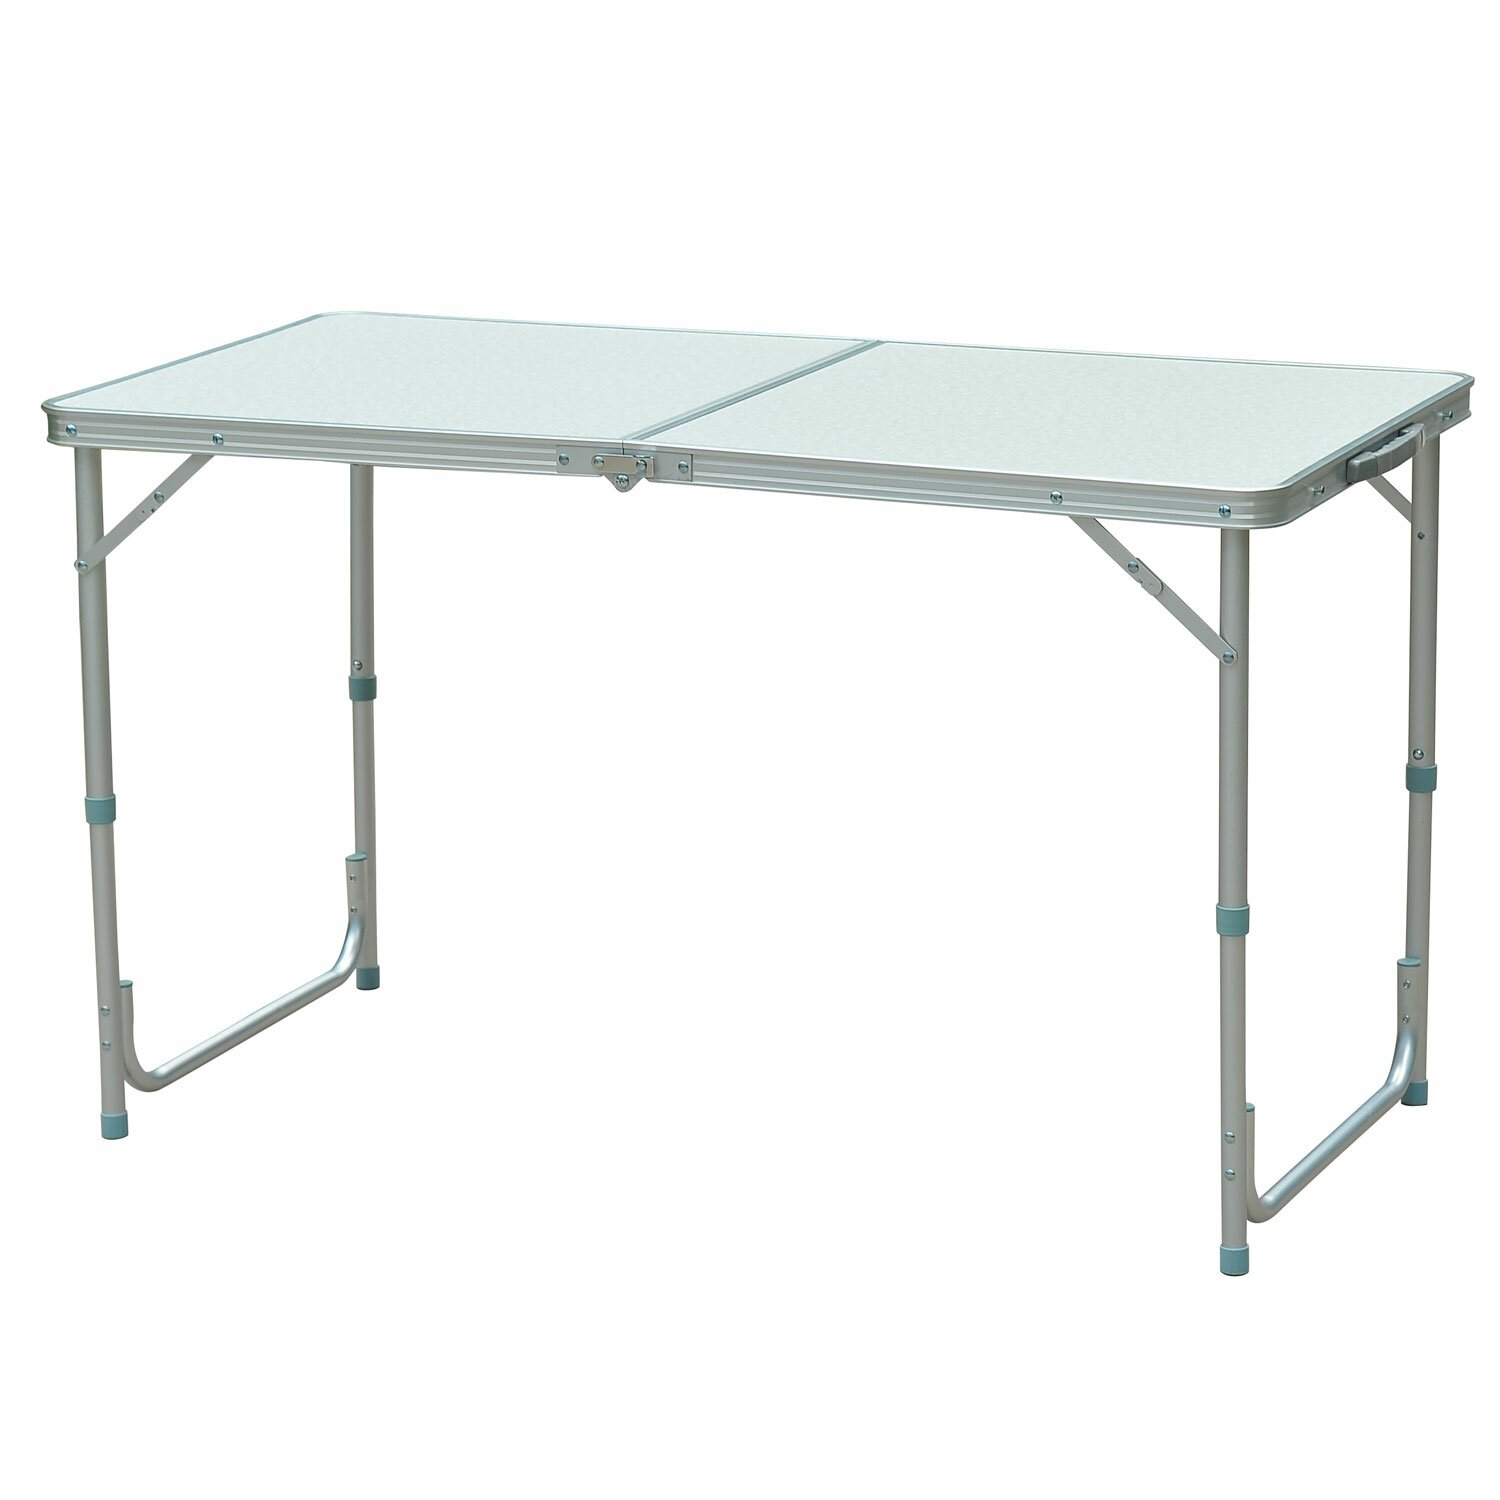 Outsunny Camping Picnic Table Amp Reviews Wayfair